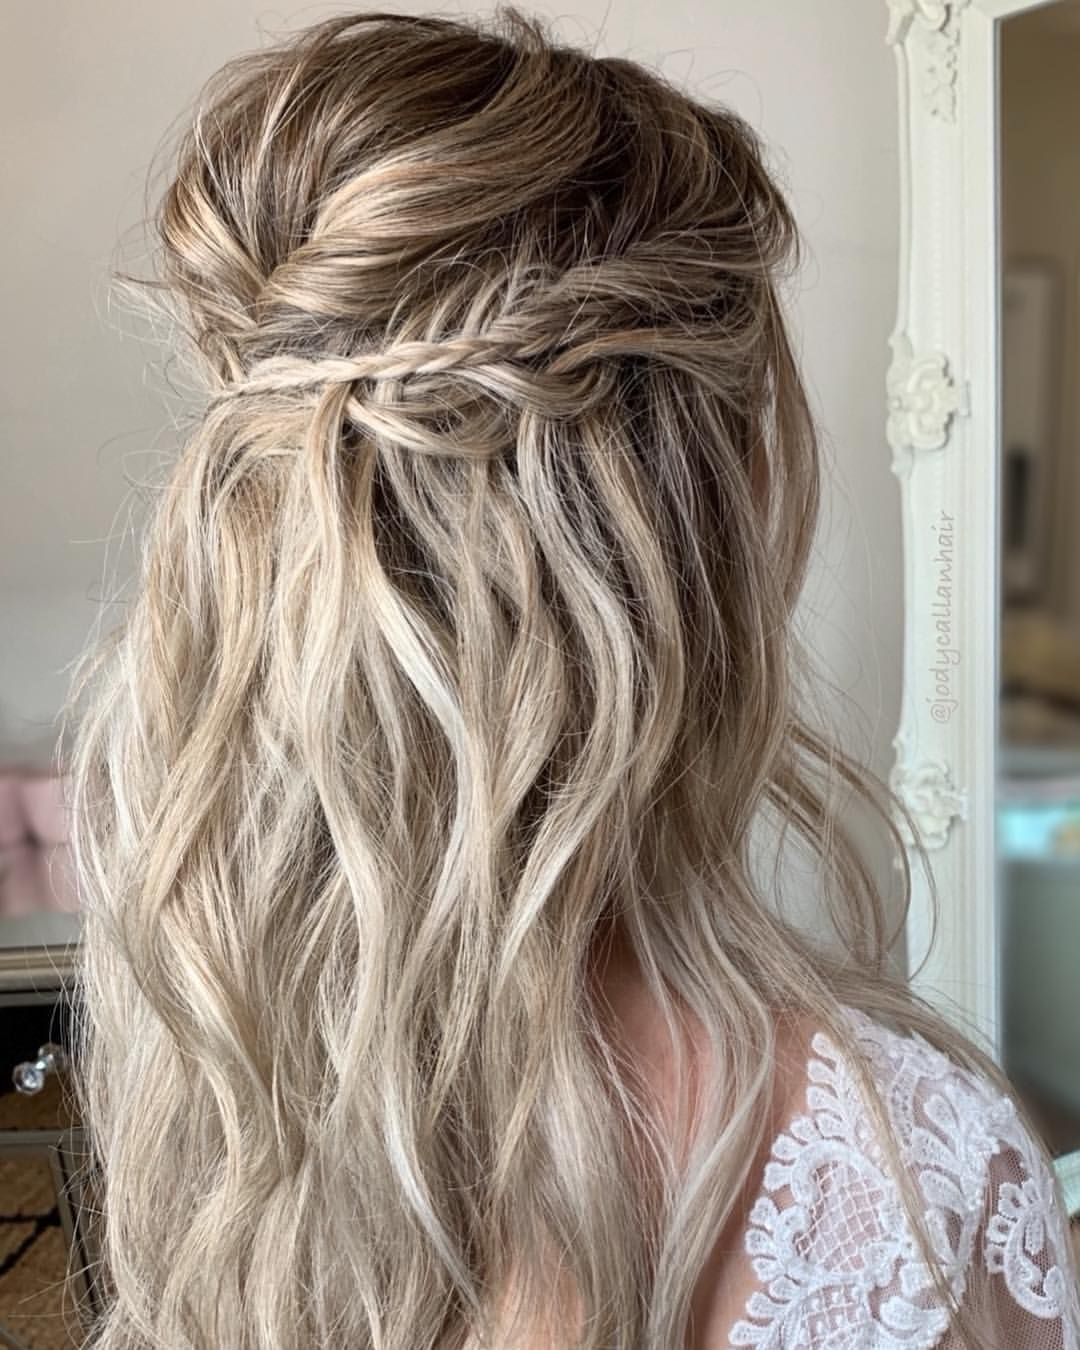 Half Up Boho Hairstyle Inspo Would You Like To See More Of Boho Hairstyles On My Page Comment Below Hai Hair Styles Bridesmaid Hair Medium Hair Styles